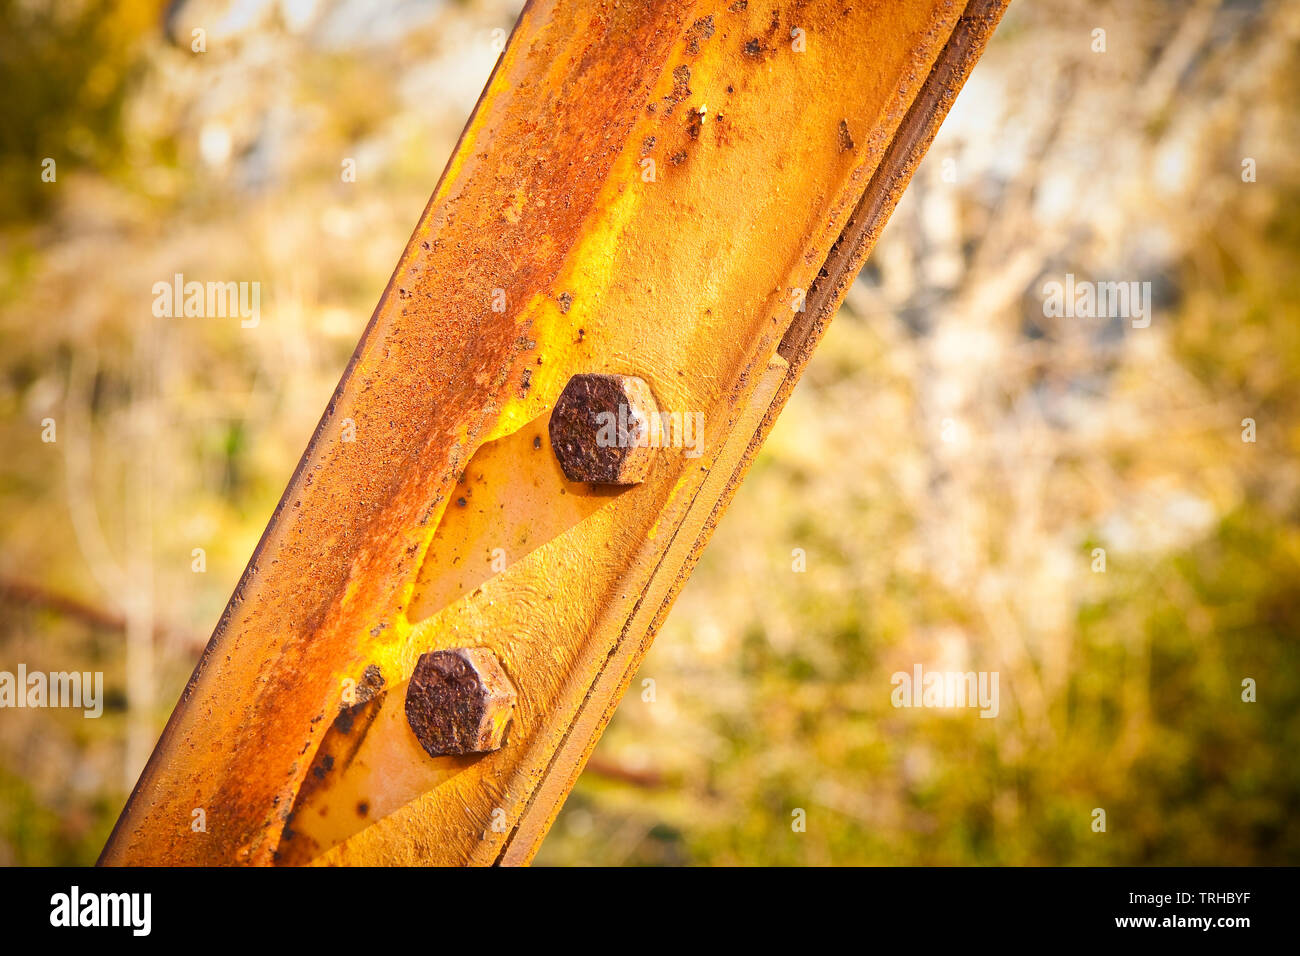 Old rusty iron structure with bolted metal profiles - Stock Image